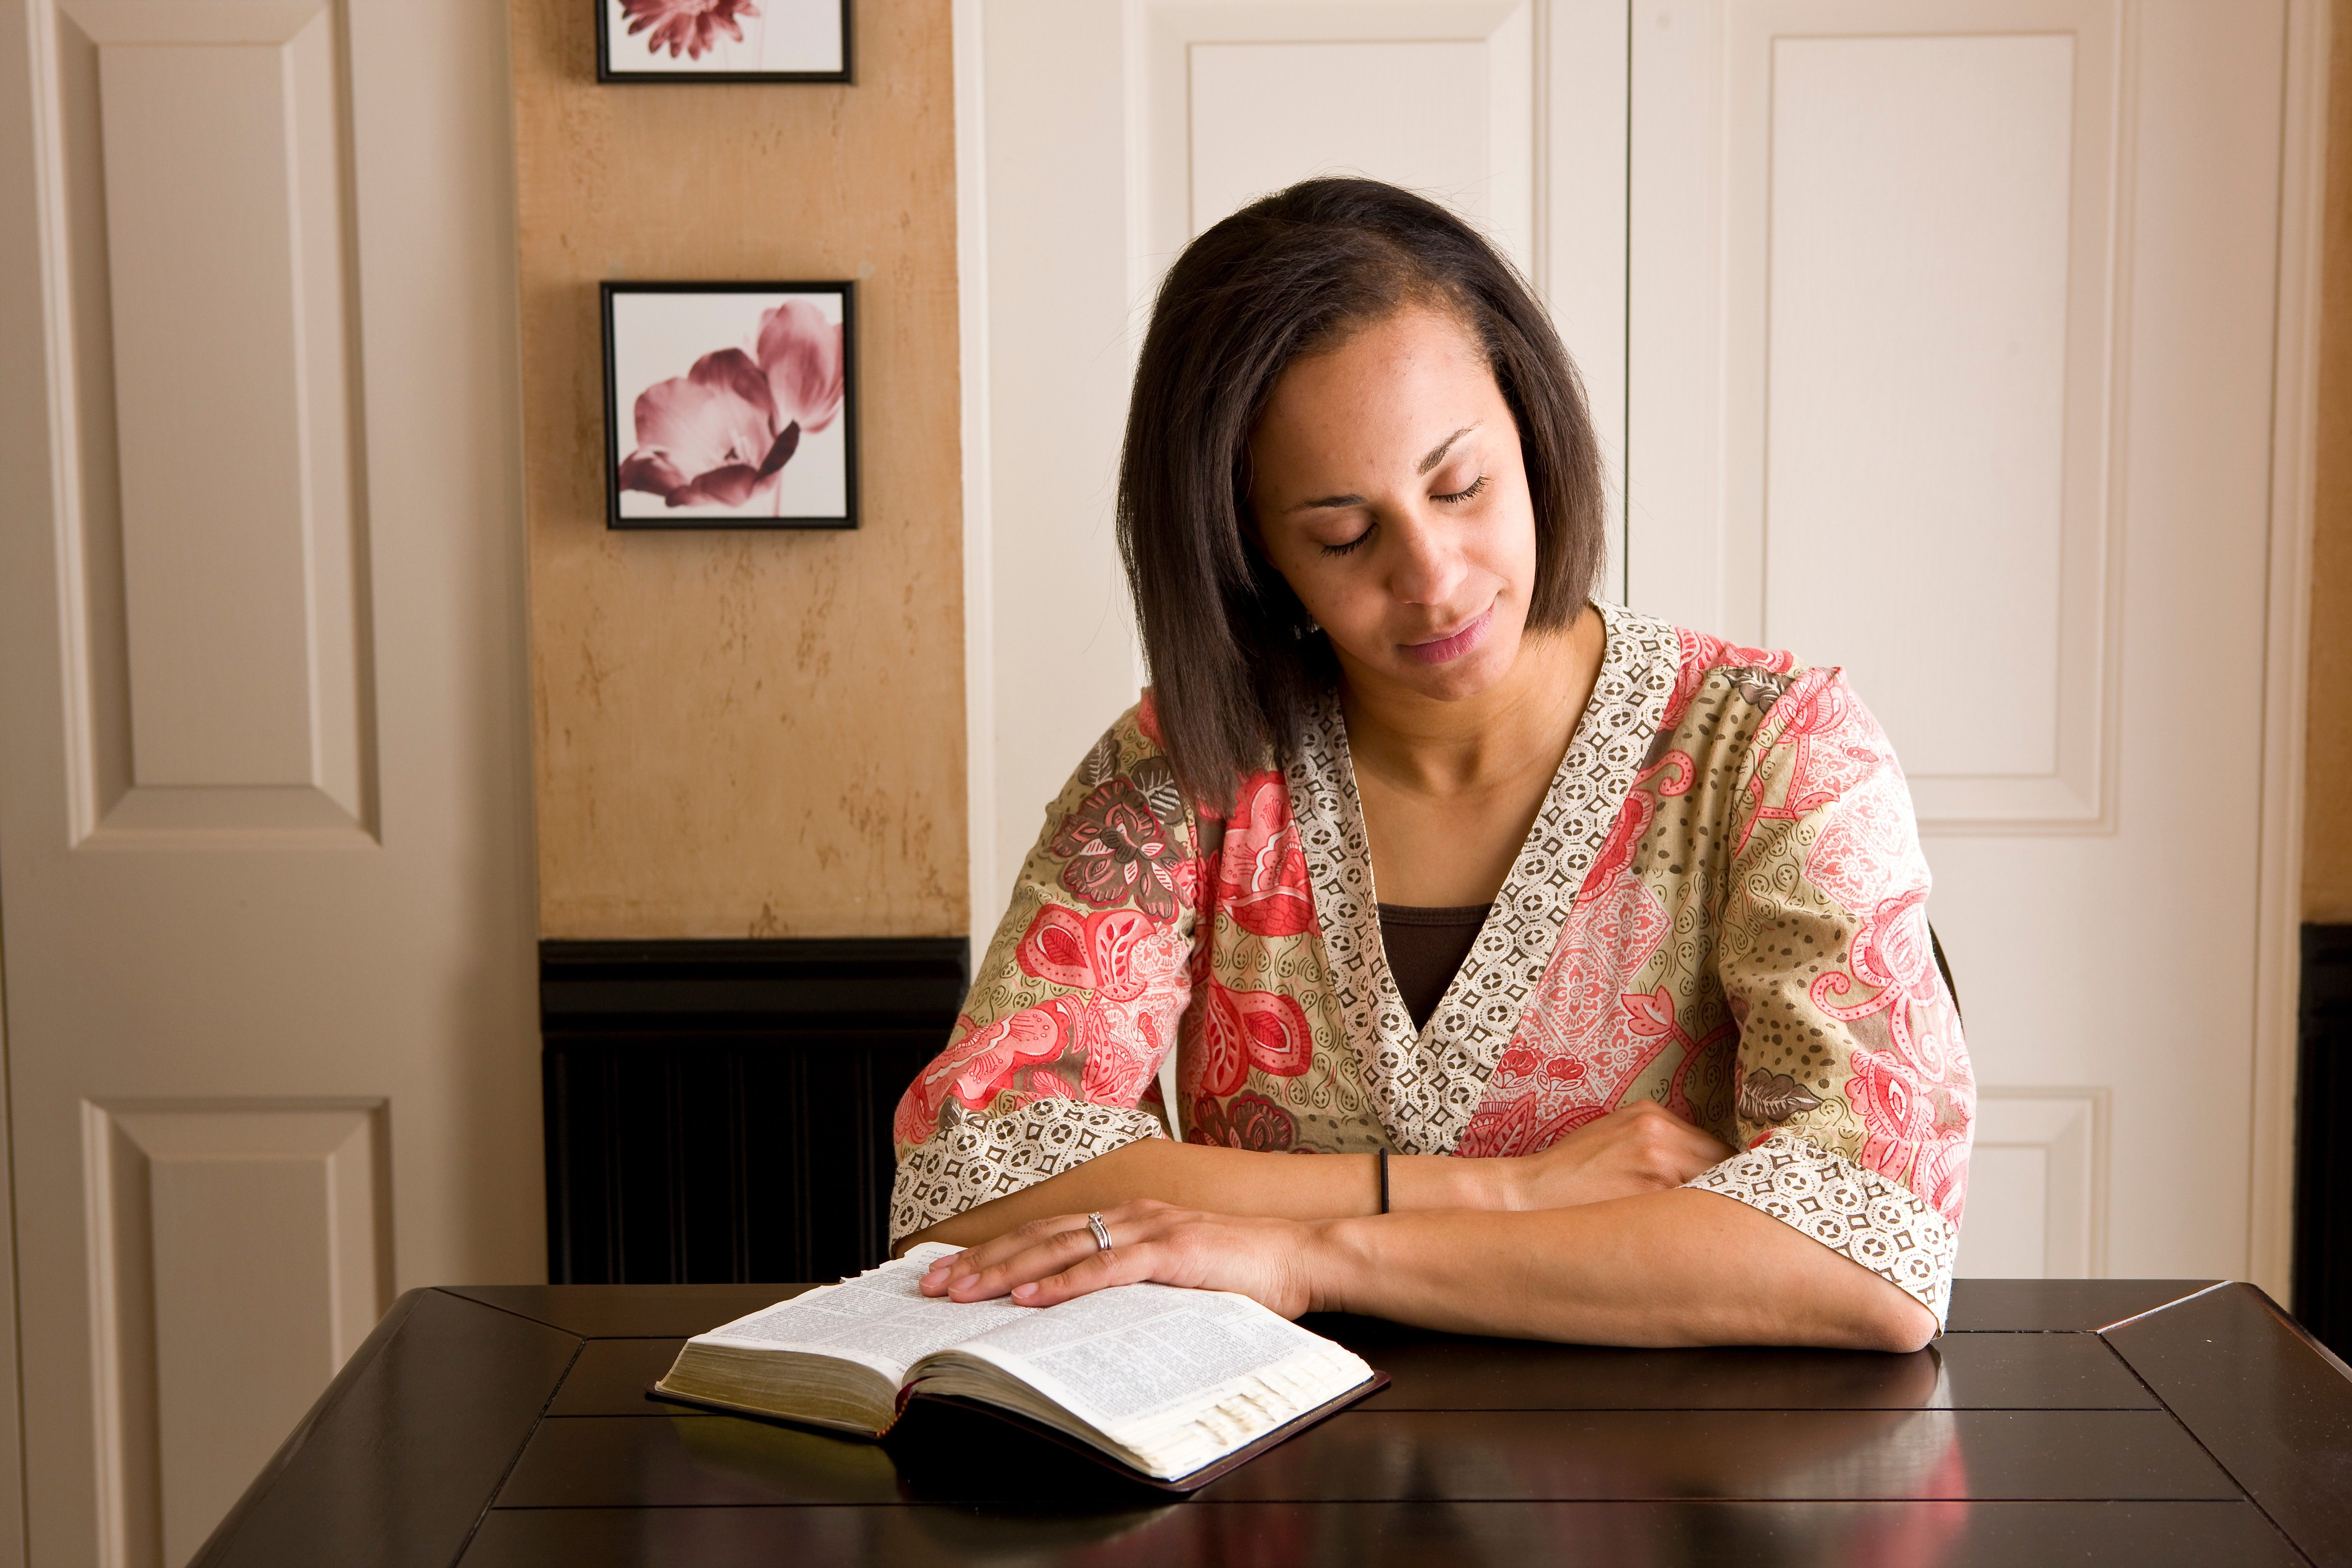 A woman studies her scriptures at the table and prays.